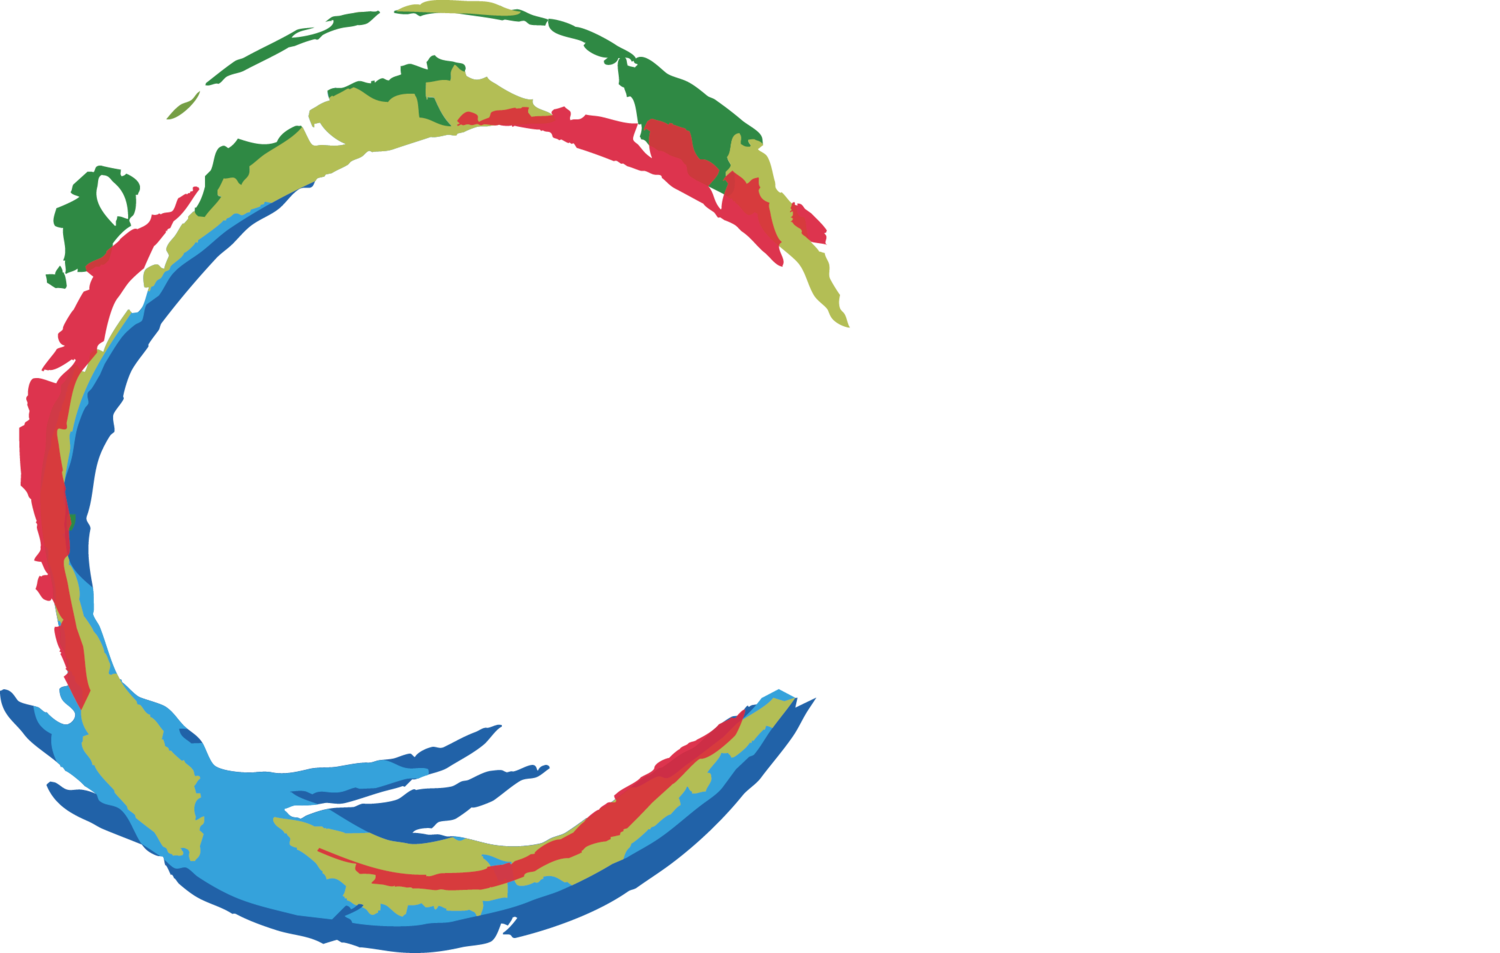 Sanctuary community church jesus. Employee clipart pastors